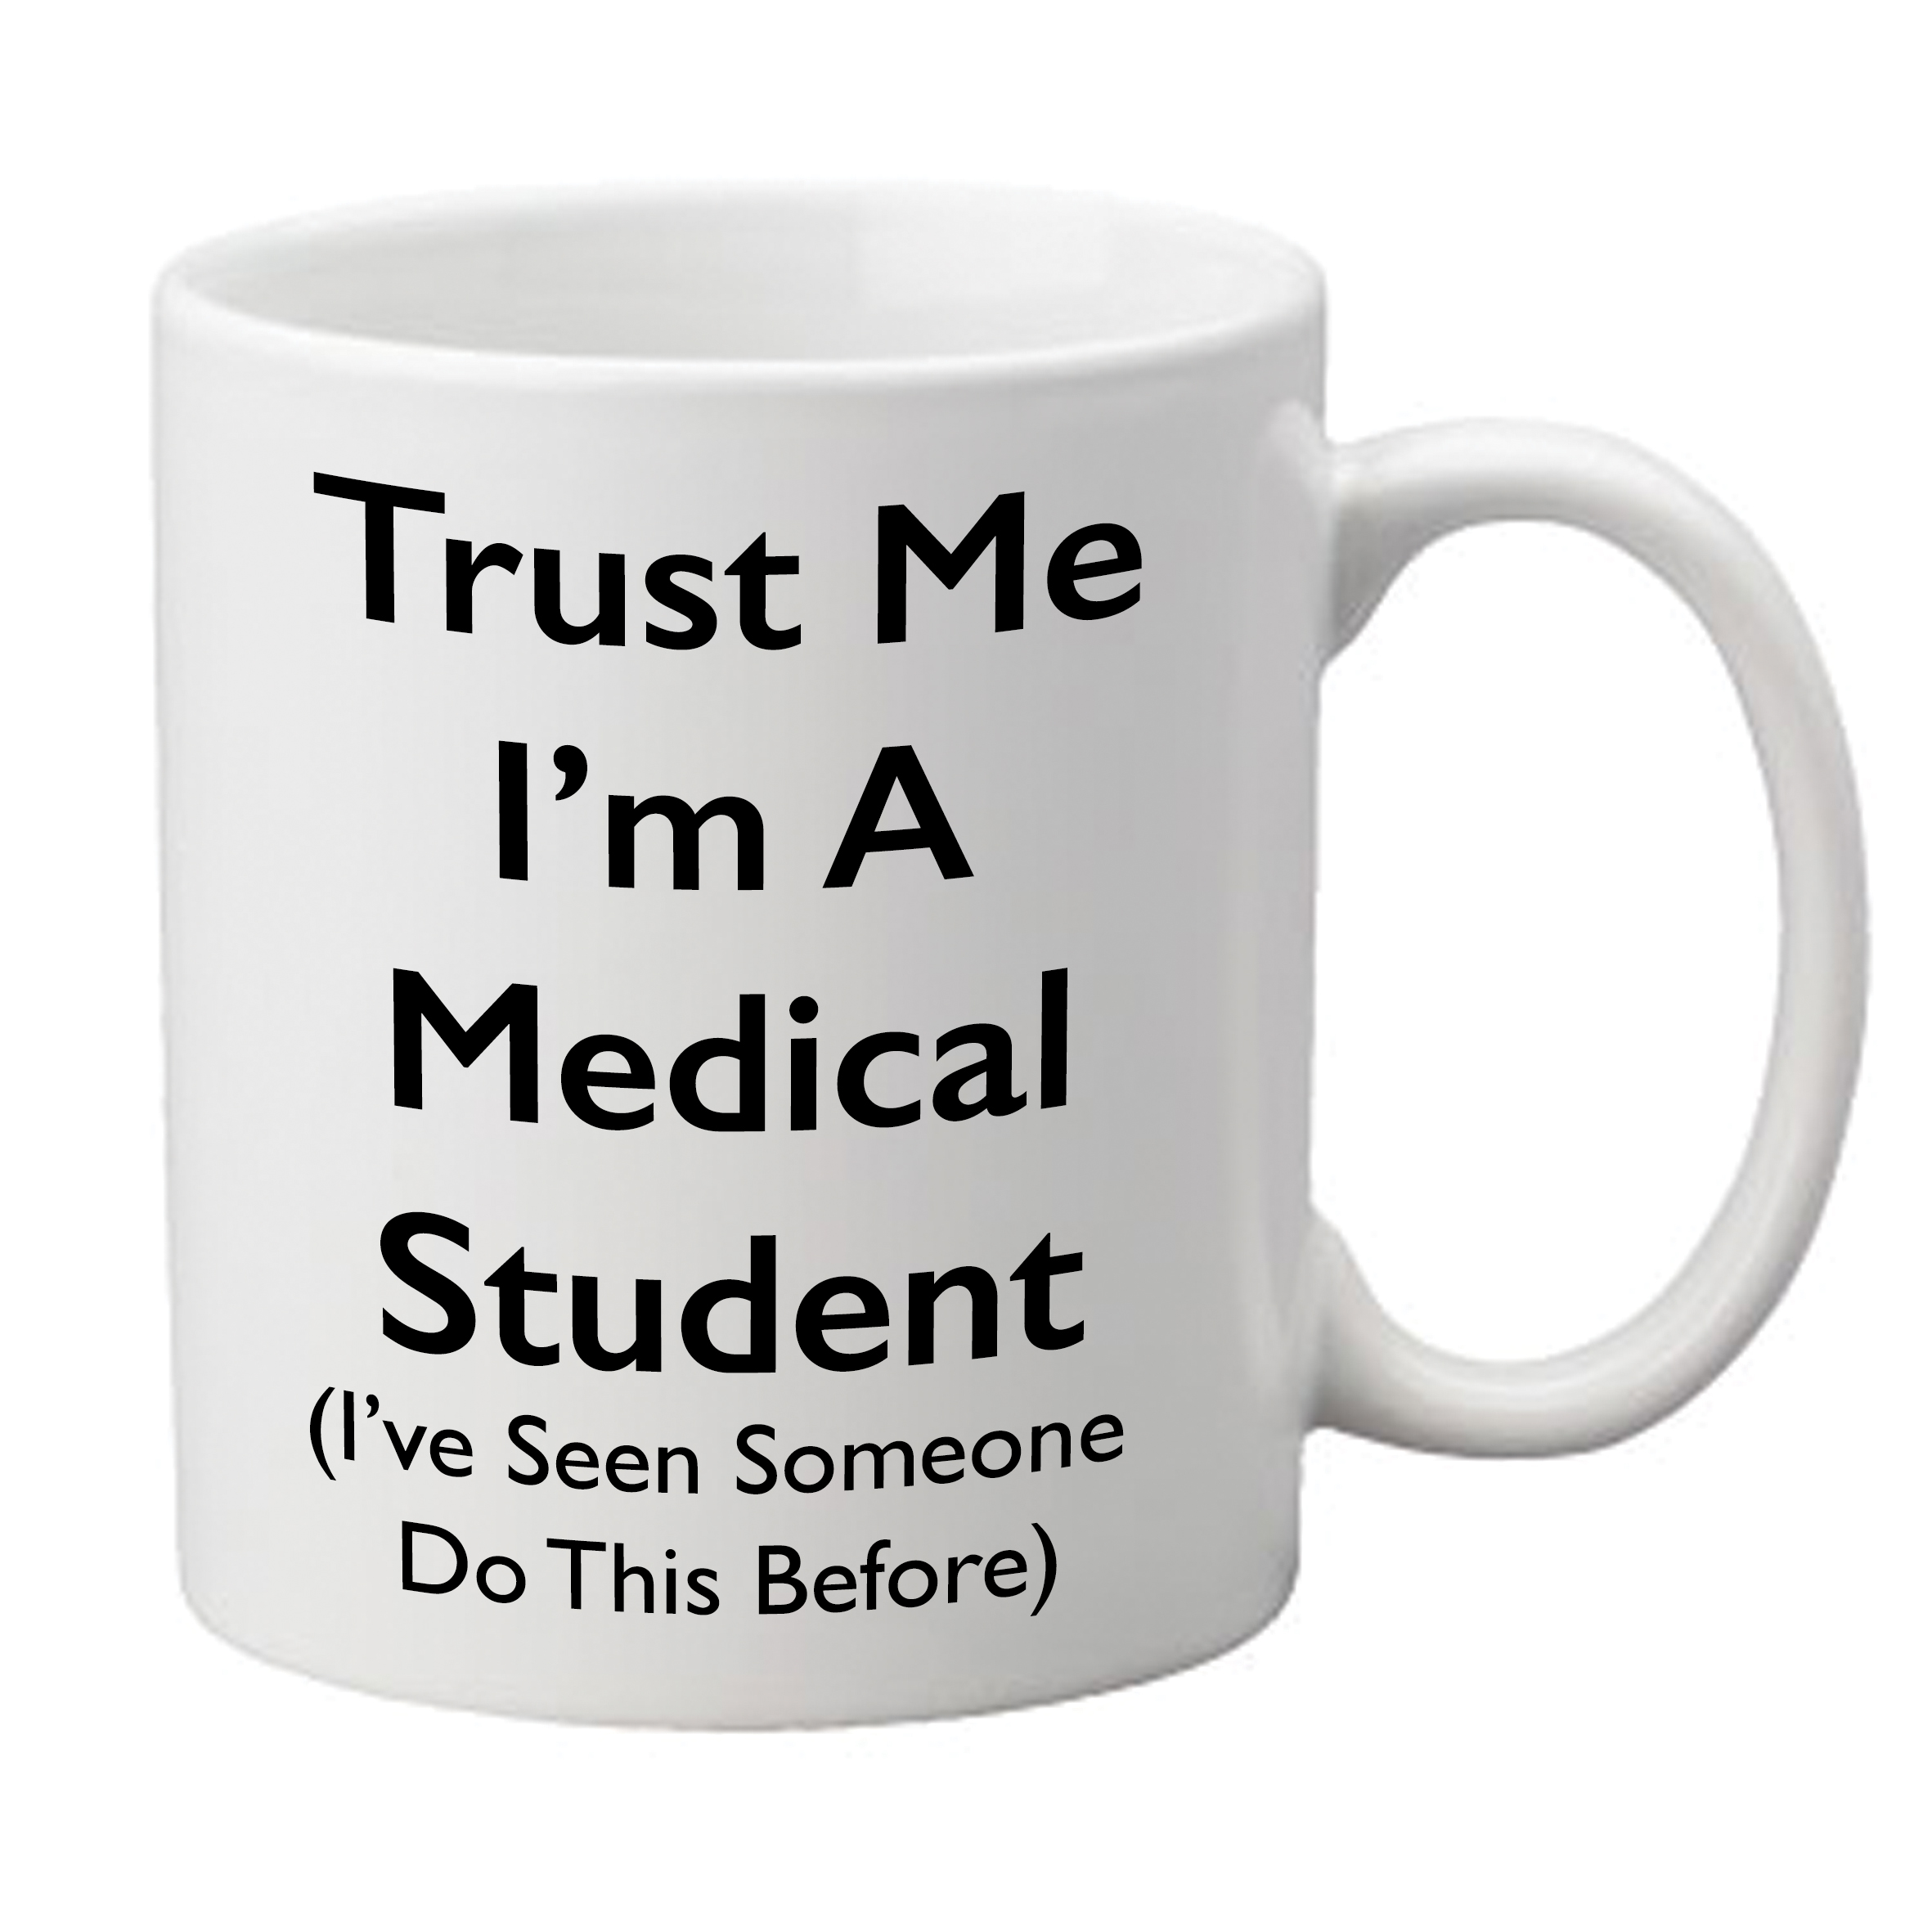 Trust Me I'm A Medical Student (I've Seen Someone Do This Before) Mug